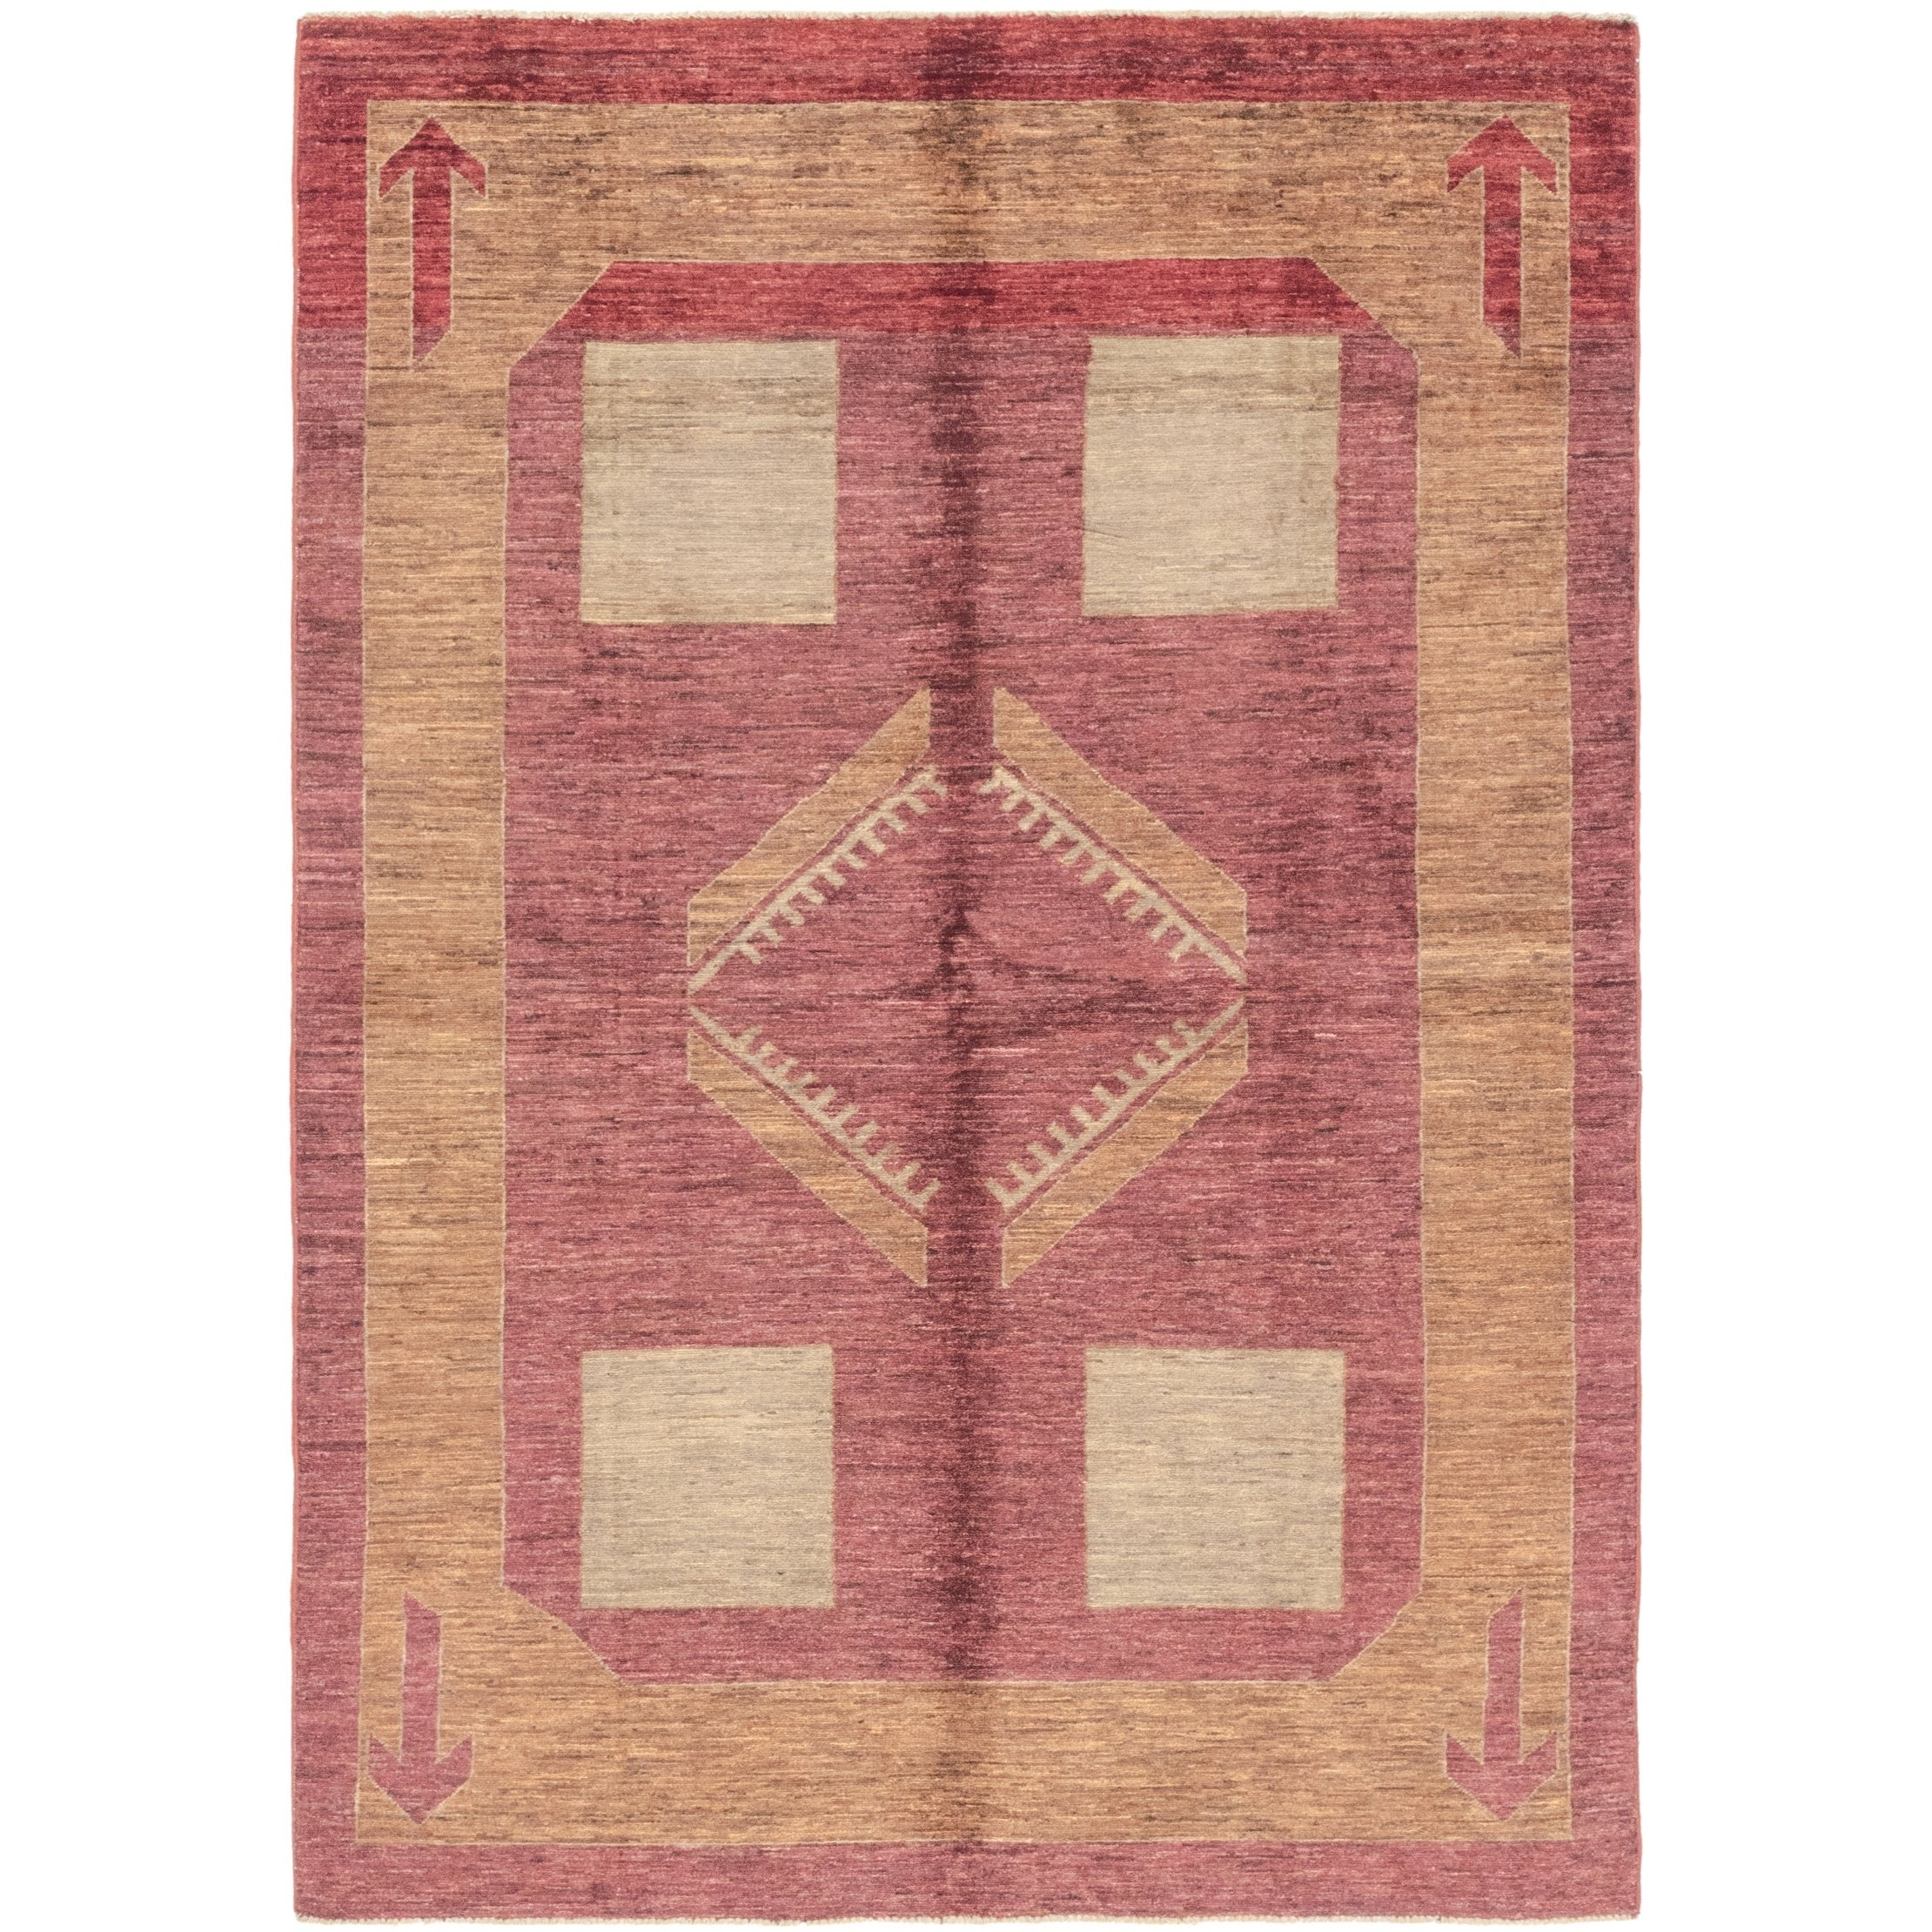 Hand Knotted Kashkuli Gabbeh Wool Area Rug - 5 6 x 7 8 (Plum Red - 5 6 x 7 8)